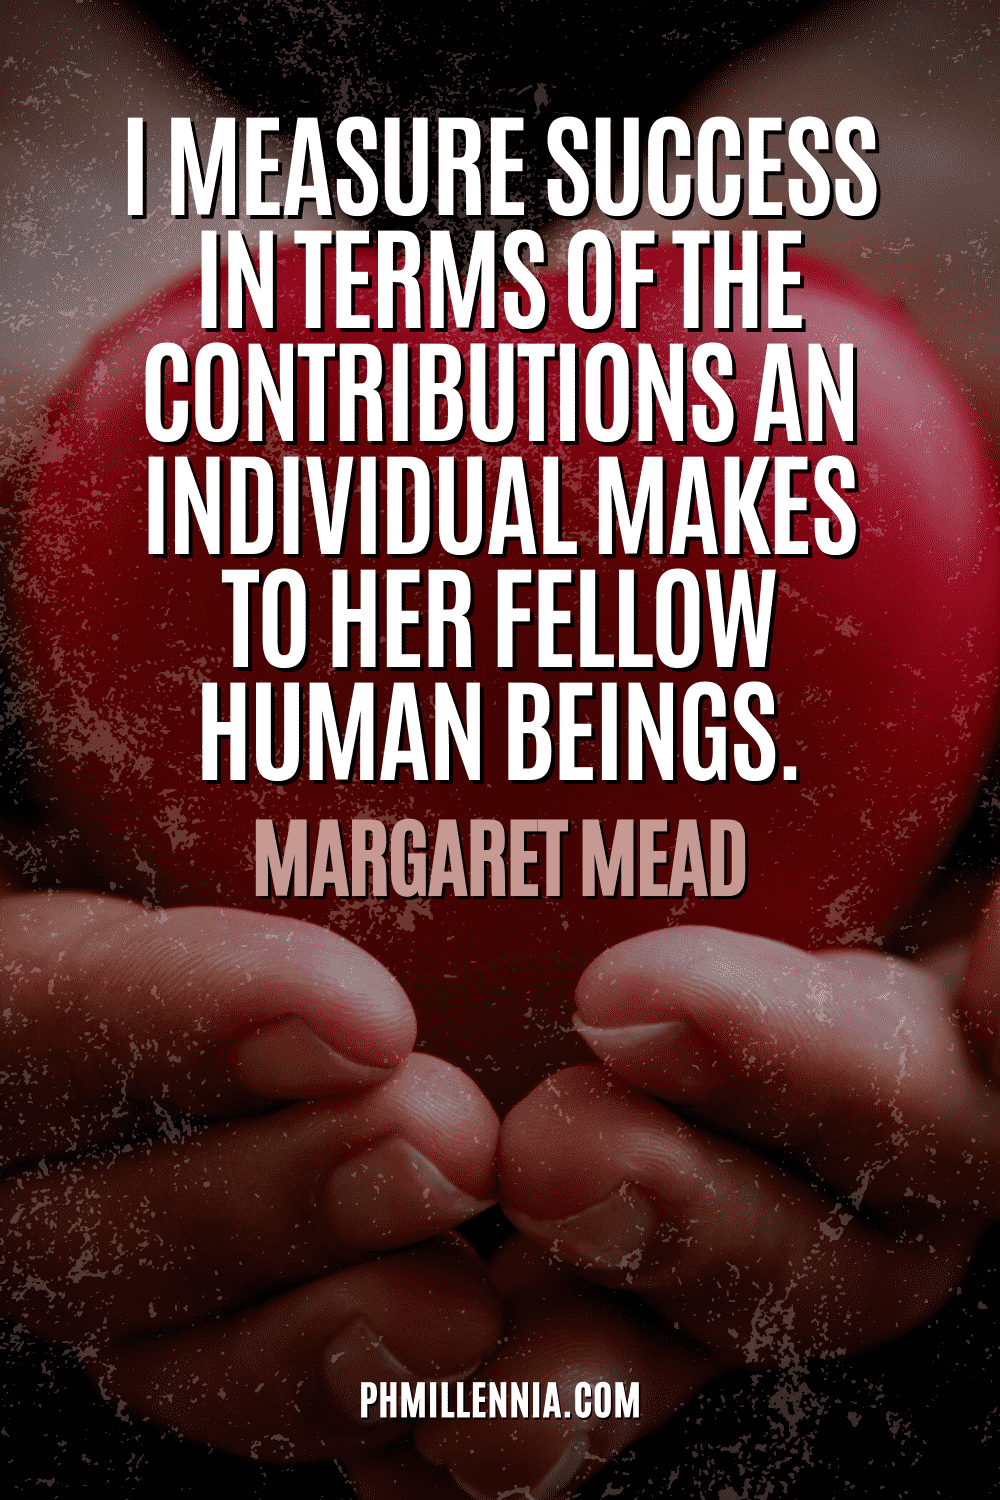 """A graphic containing text on an image of a hand holding a model heart, intended as a Pinterest Pin for the article """"199 Quotes on Success to Inspire You to Greatness"""" on phmillennia.com"""